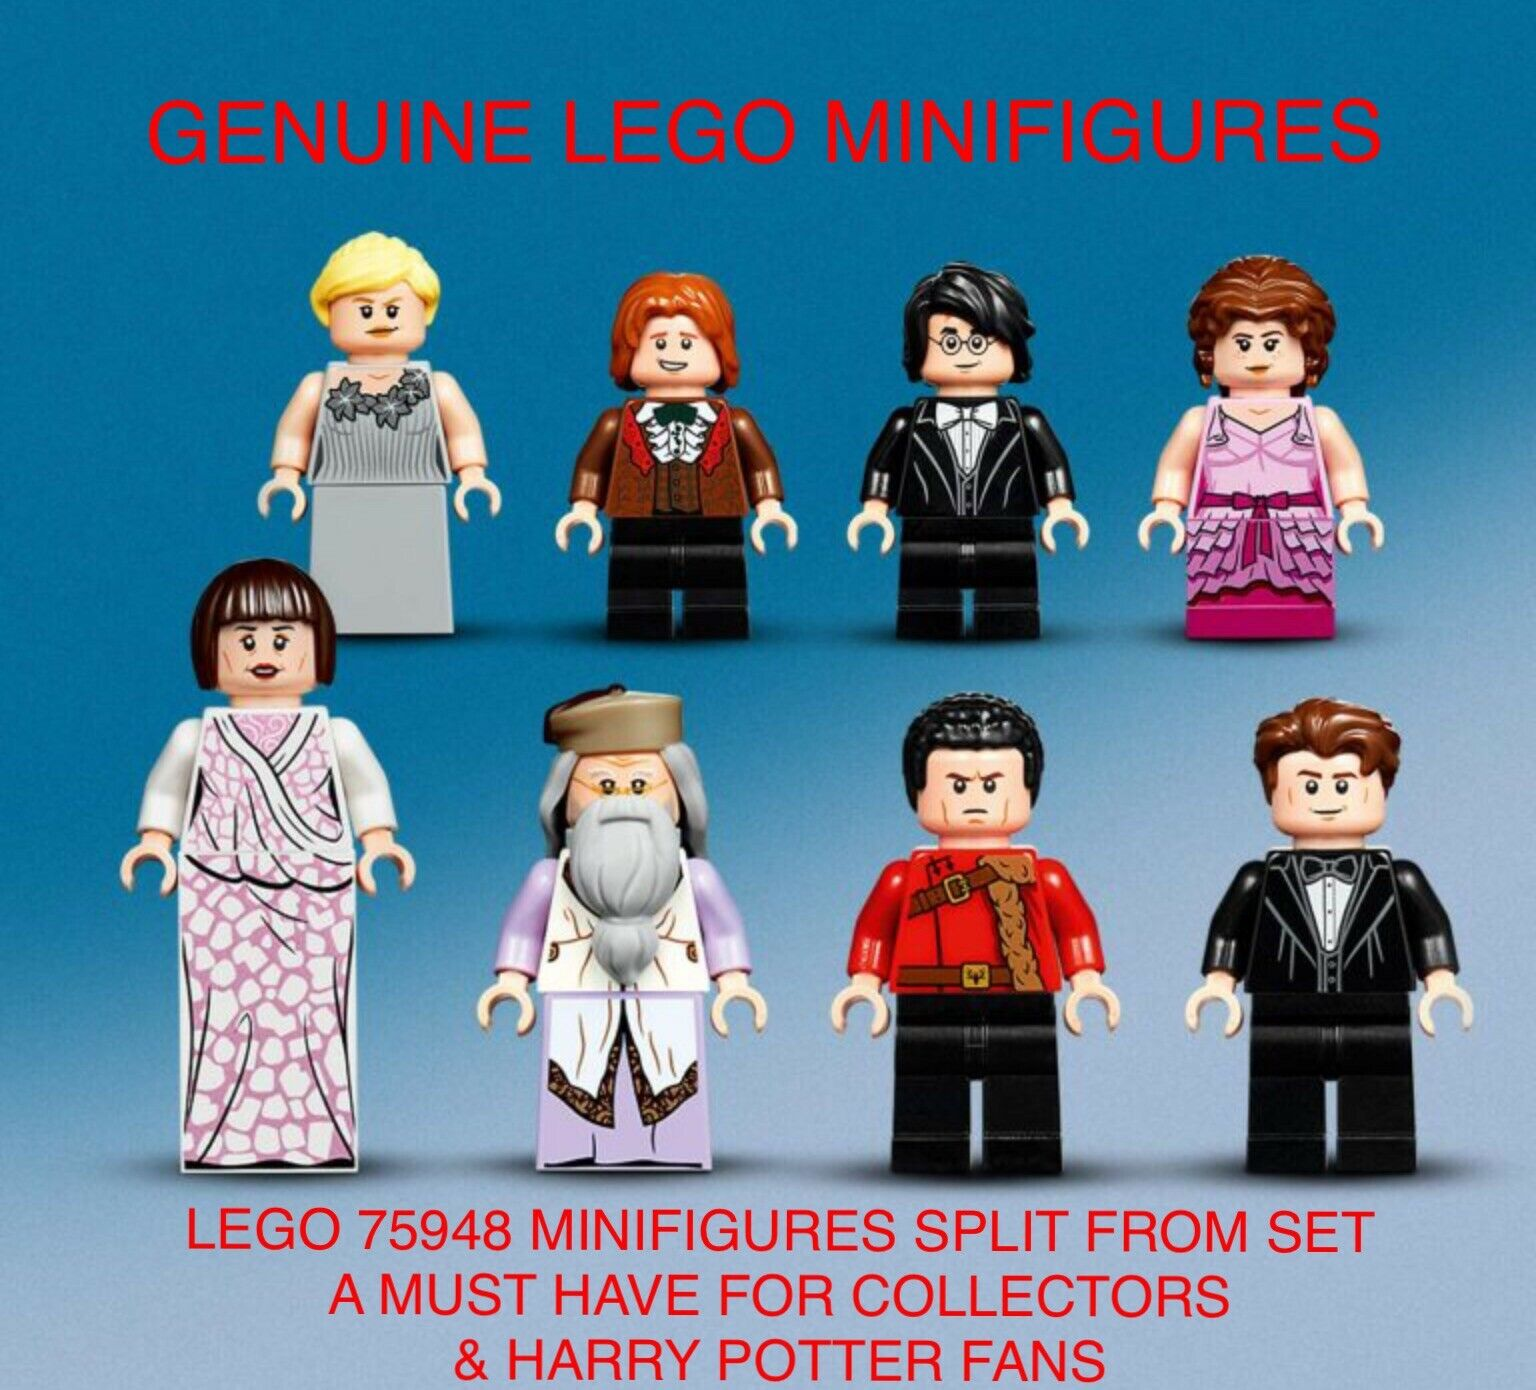 8 X LEGO MINIFIGURES SPLIT FROM SET 75948 - HARRY POTTER. B NEW. MUST HAVE. (L)